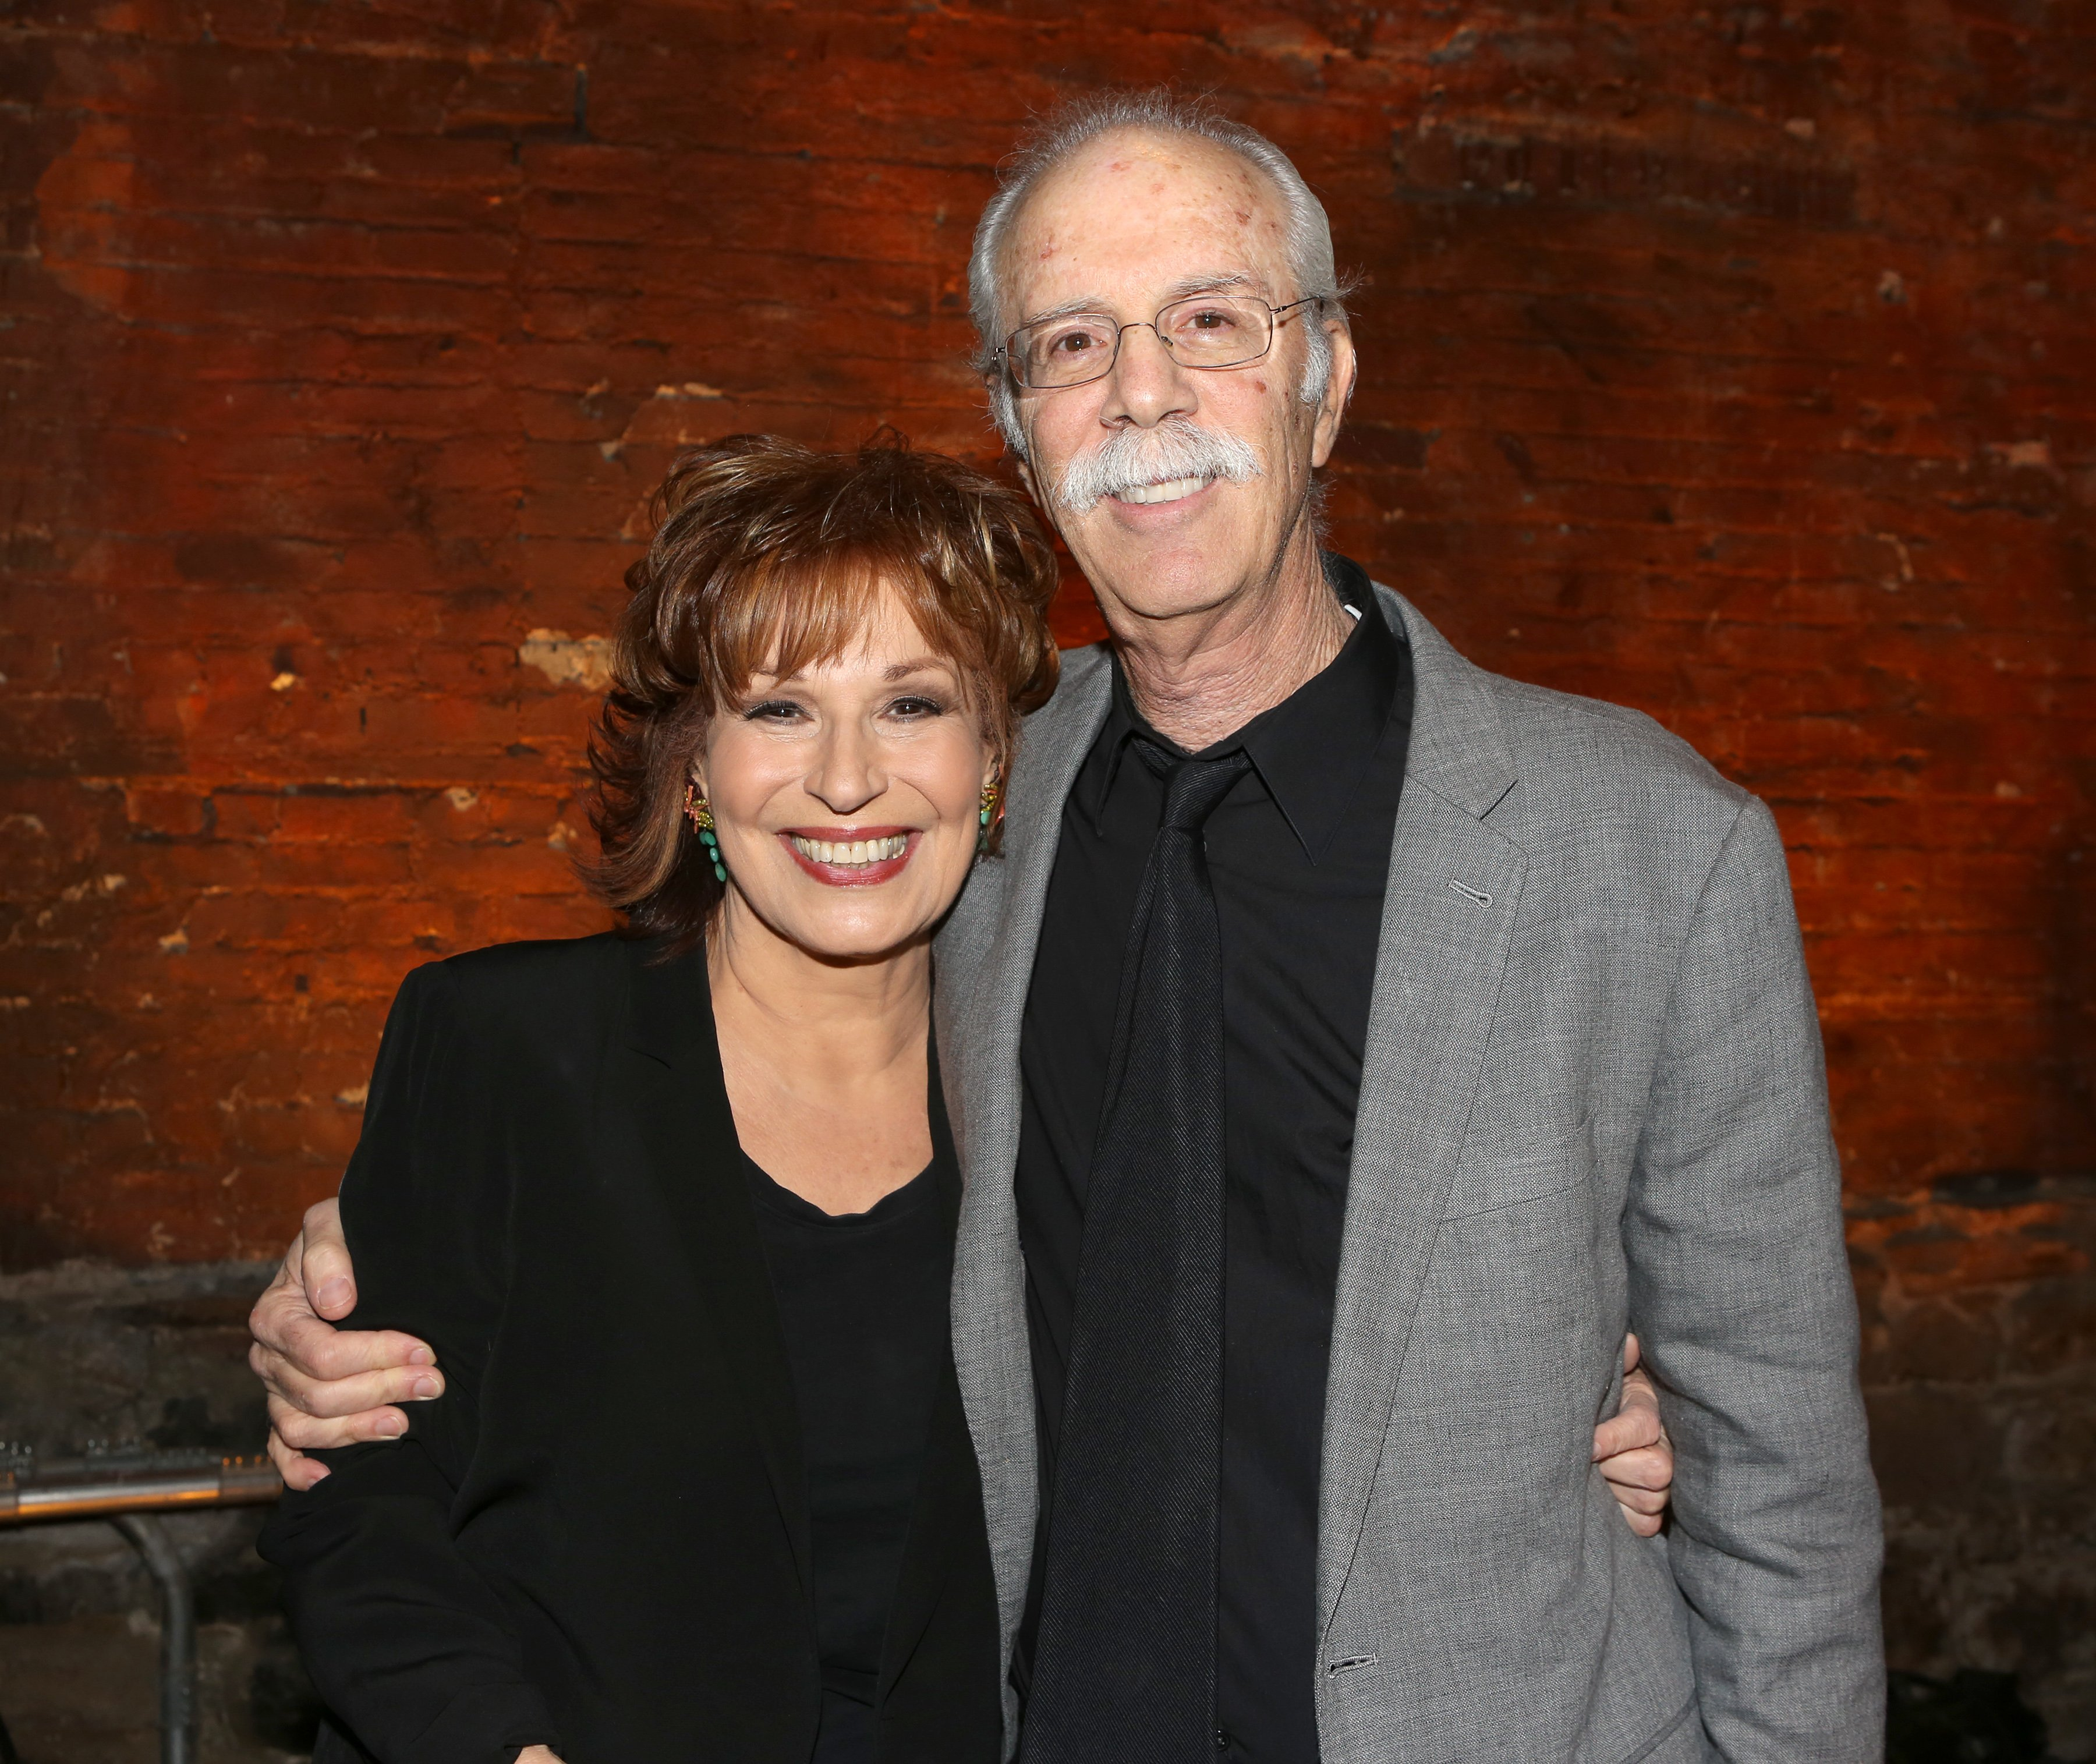 """Joy Behar and her husband, Steve Janowitz at the opening of Behar's """"Me, My Mouth and I"""" in New York City, November 23, 2014. 